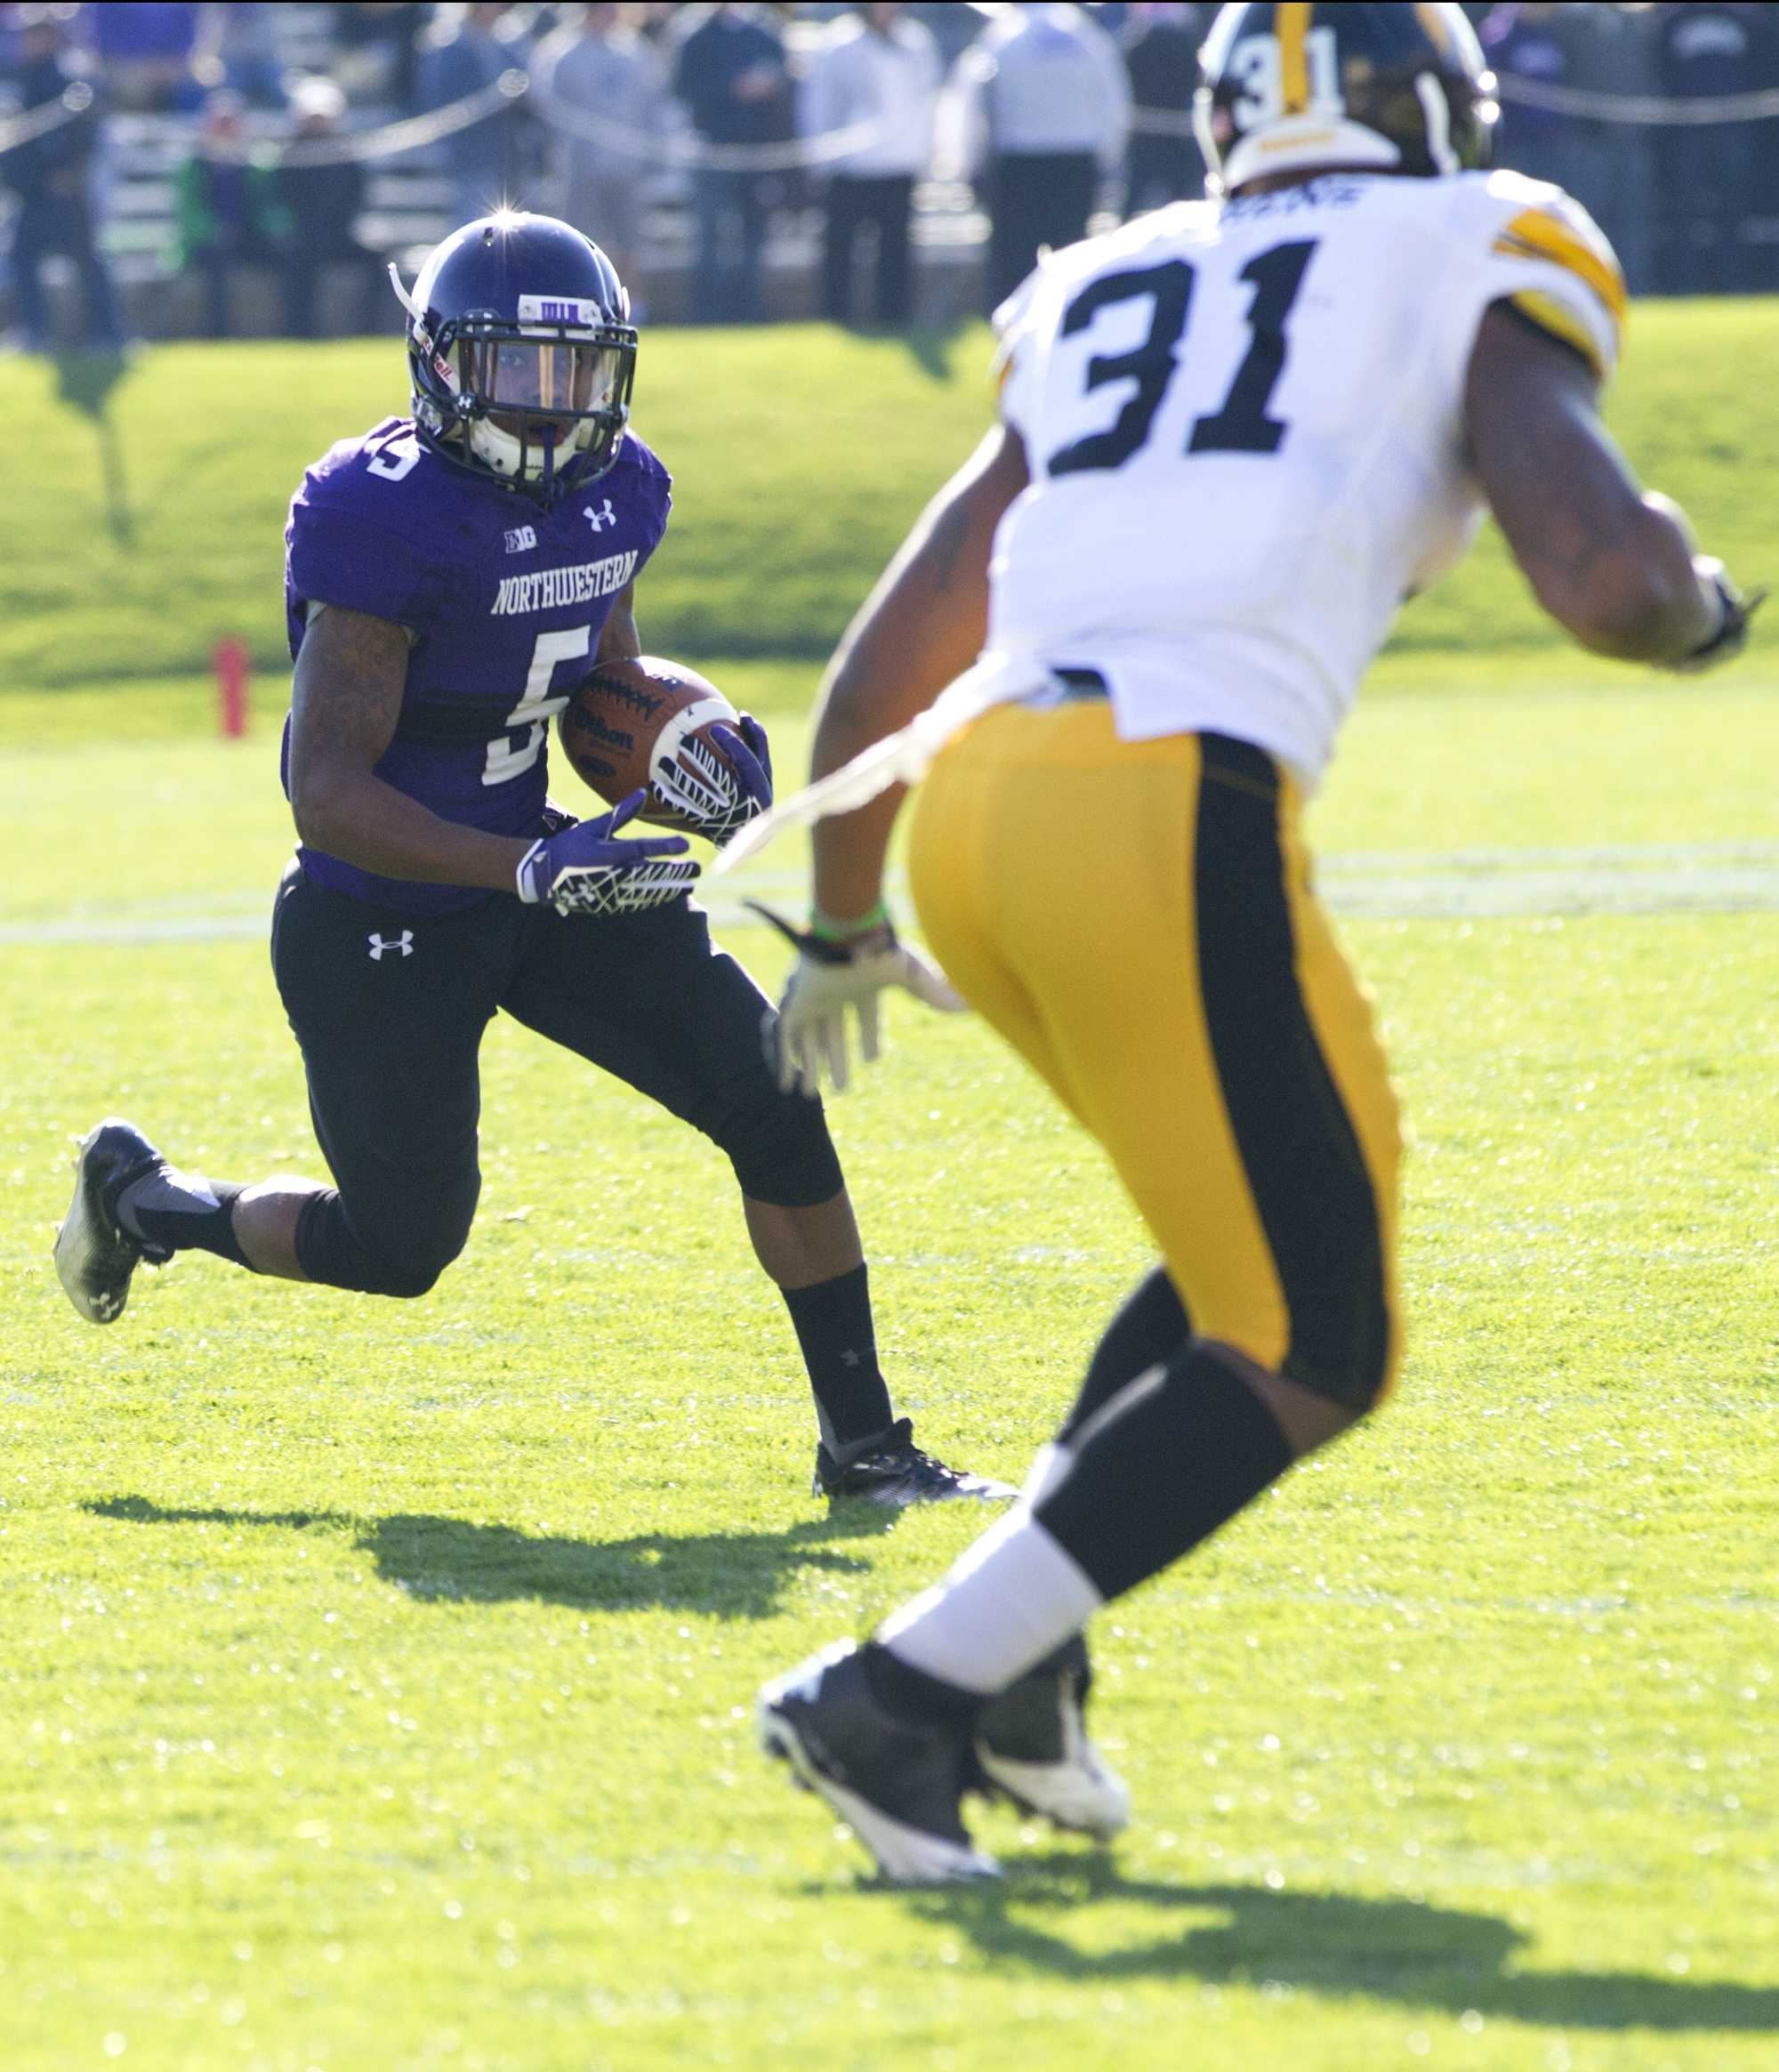 Northwestern running back Venric Mark eclipsed 1,000 rushing yards on the season in the second quarter against Iowa on Saturday. The Wildcats went on to defeat the Hawkeyes 28-17.